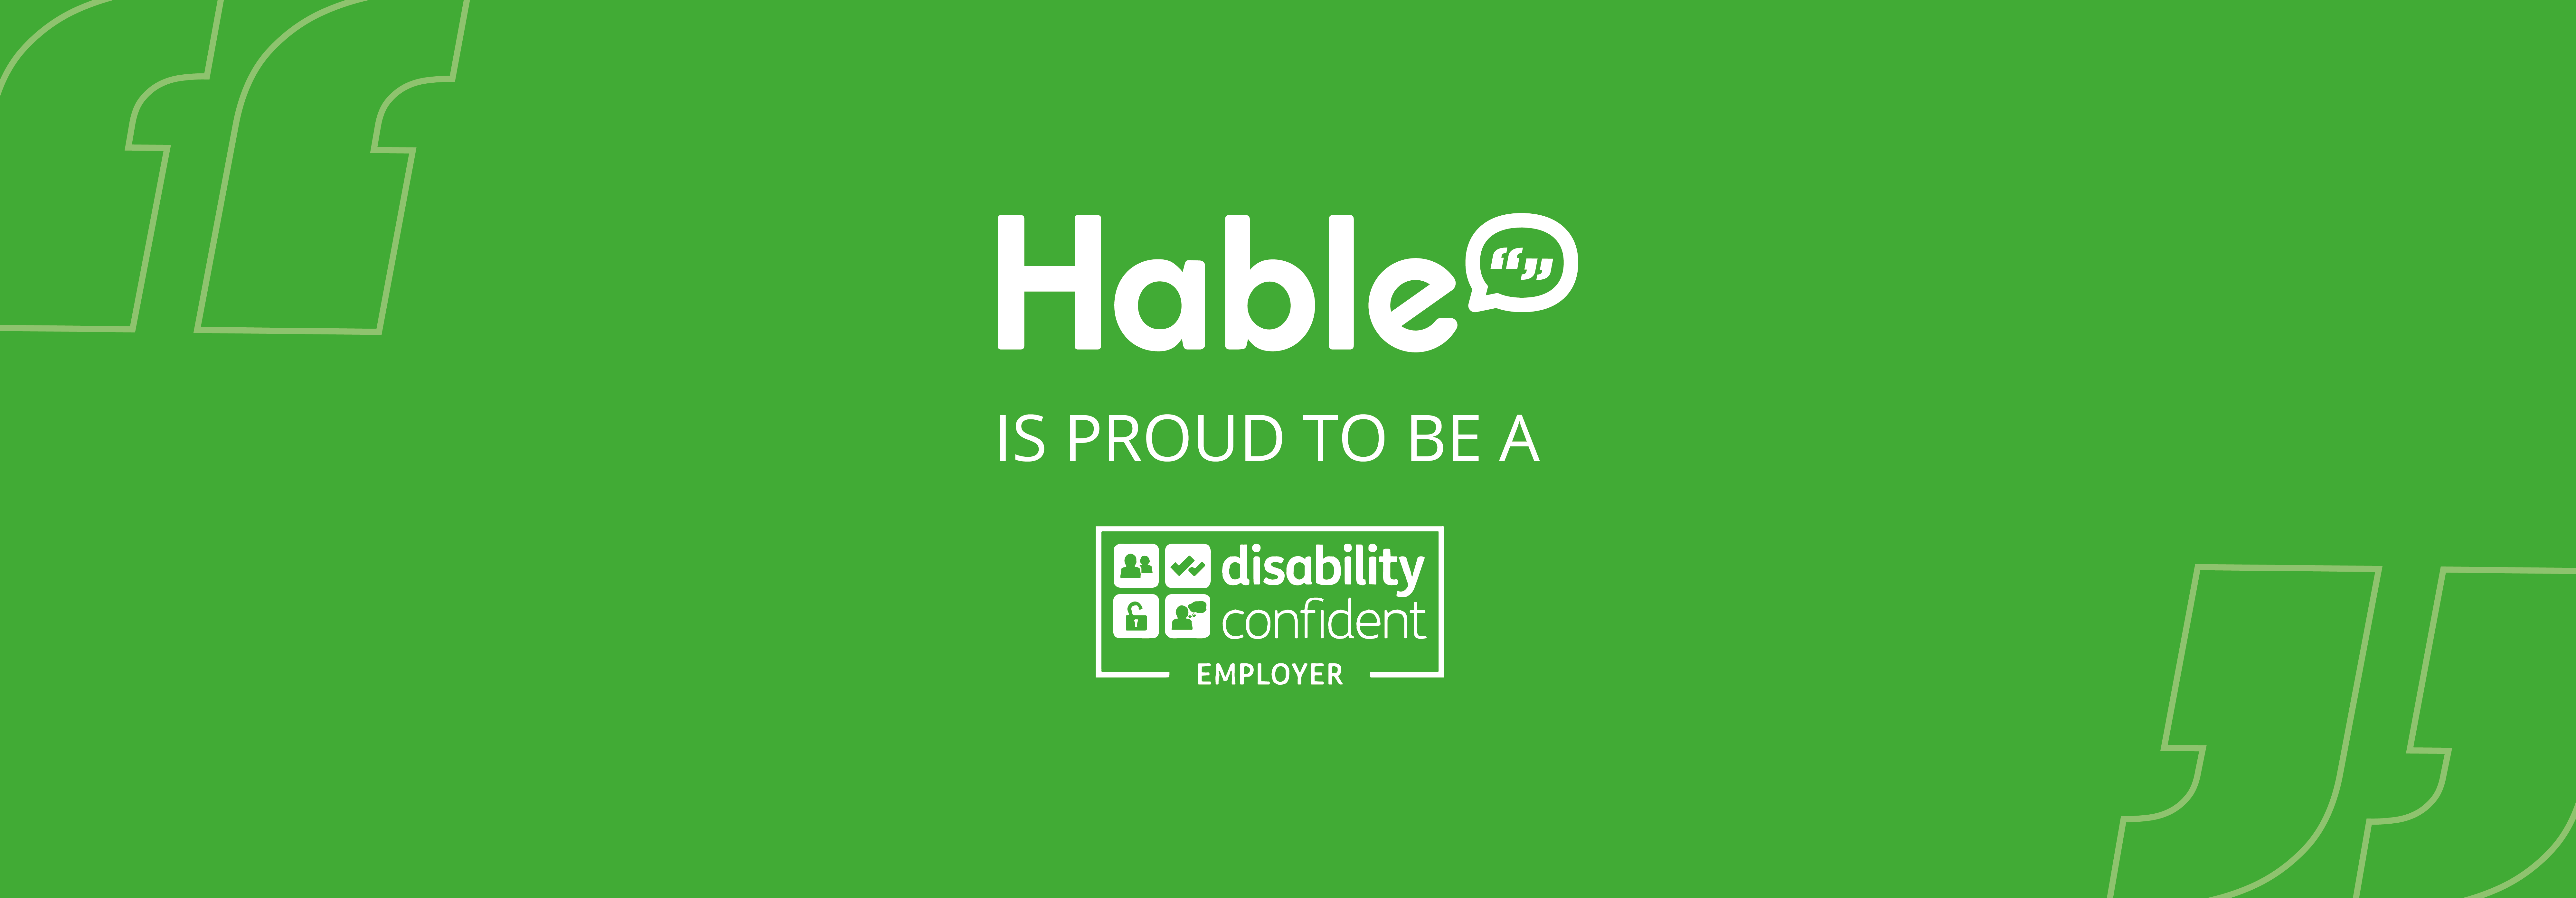 Hable is proud to be a disability confident employer